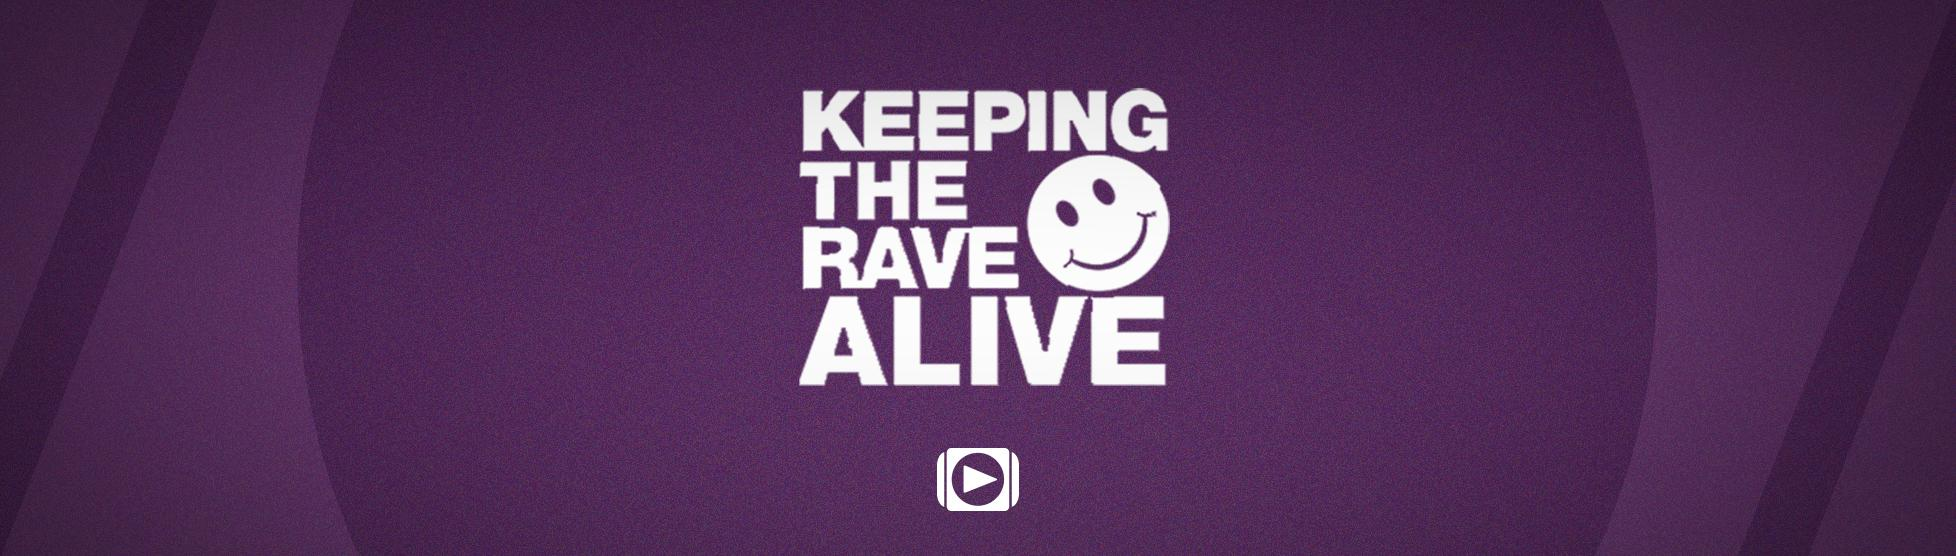 Keeping the rave alive artists home of for Hardstyle house